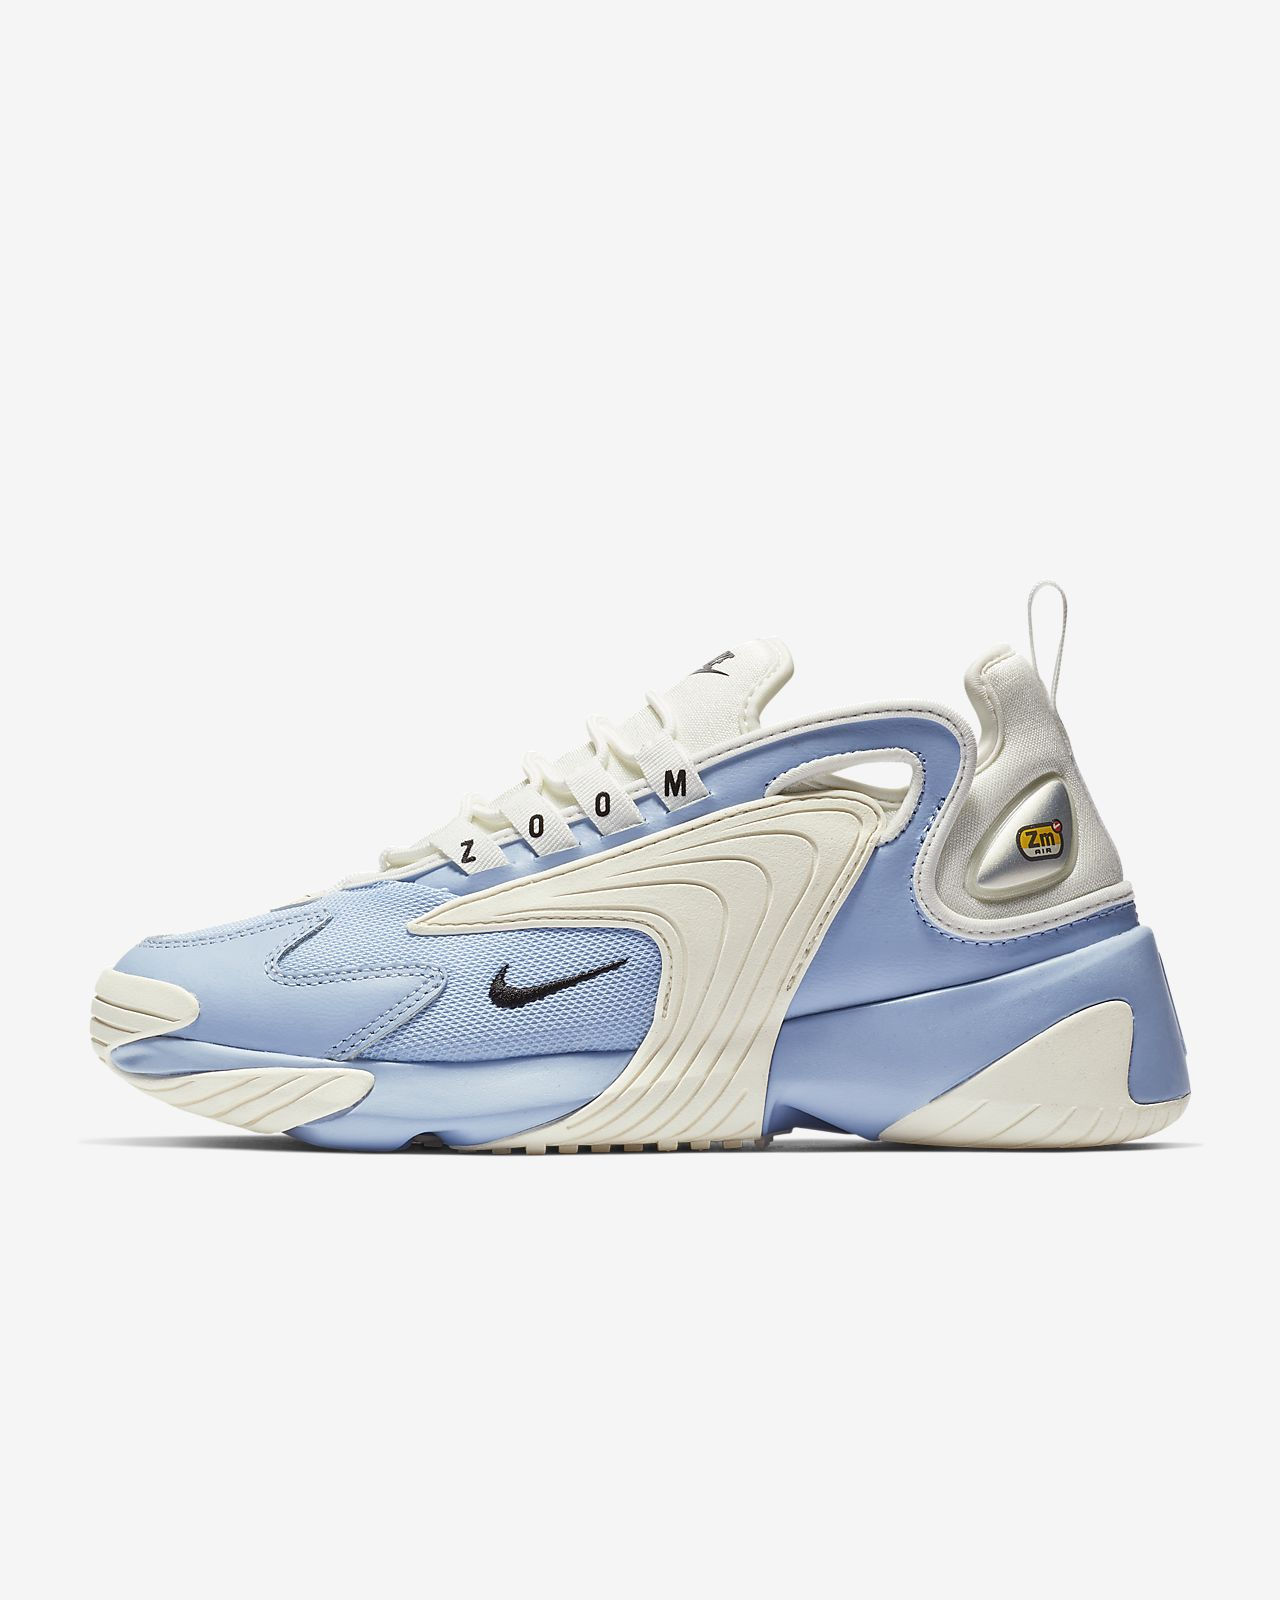 cheap for discount d0264 af963 2k Nike Shoe Wnhxyyvp Women s Zoom Au Fwq45Z